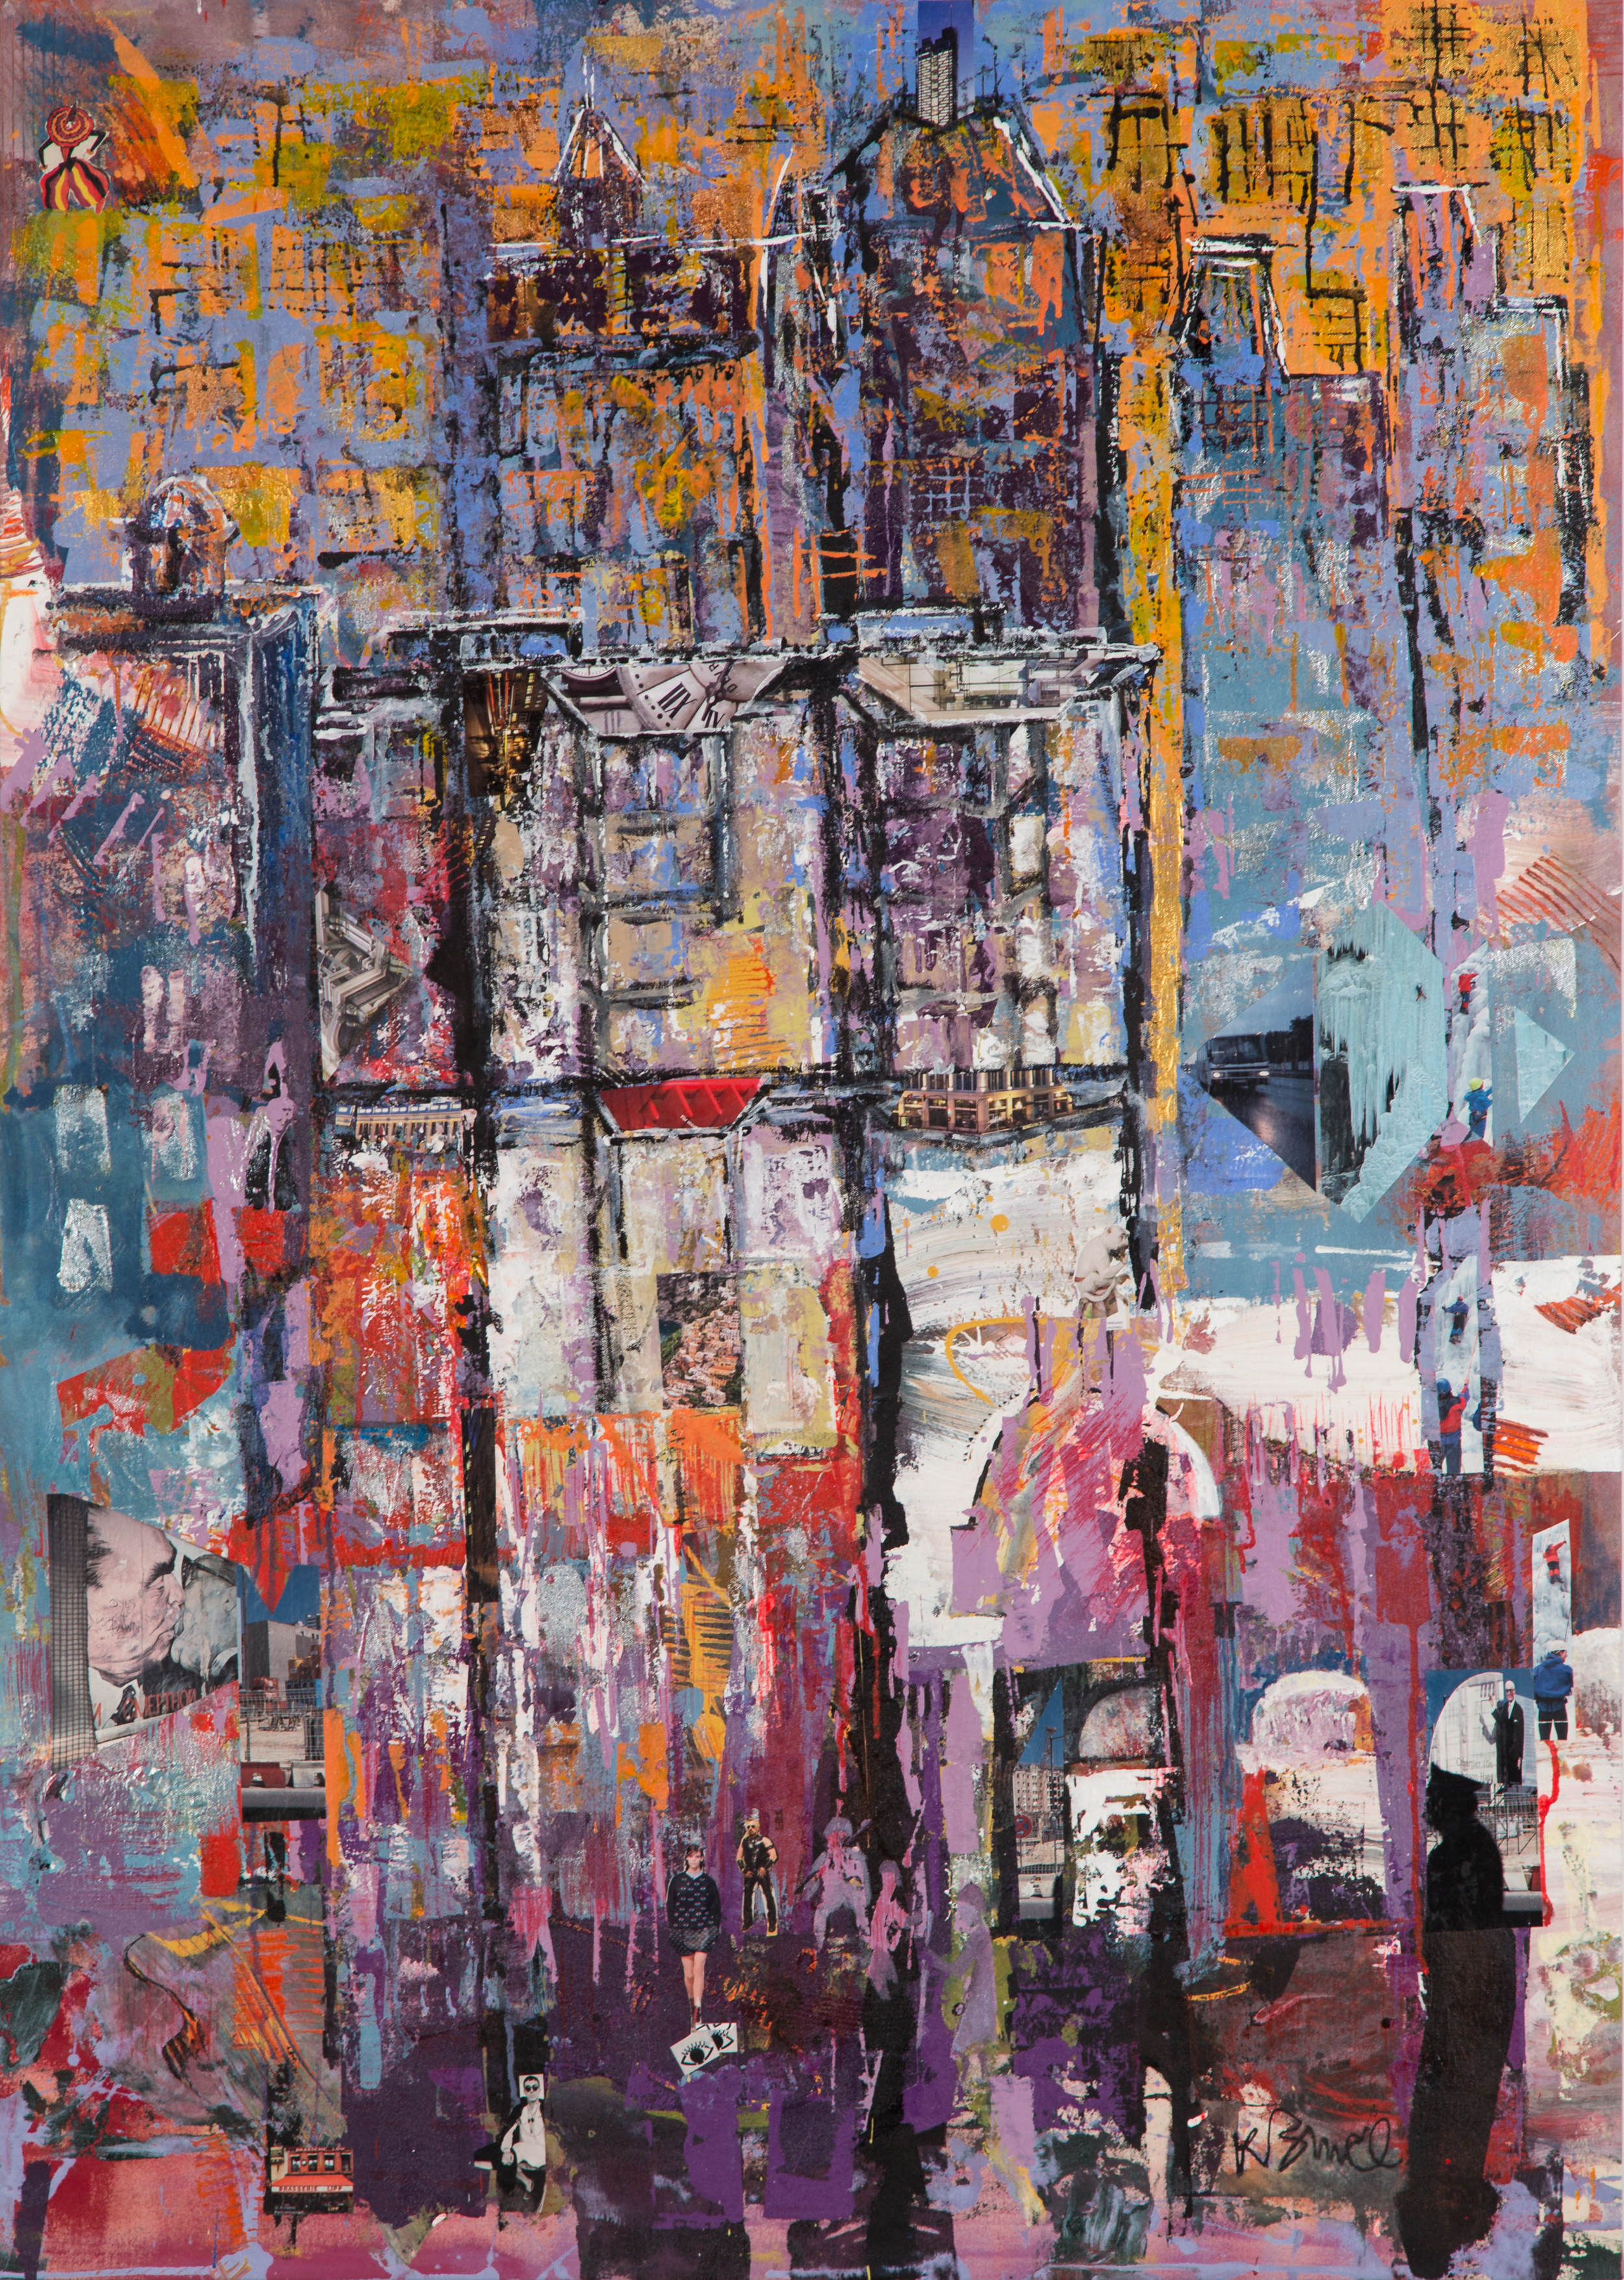 KB-073, Intencity, Acrylic with Collage on Canvas, 39.5 x 56, $4,200